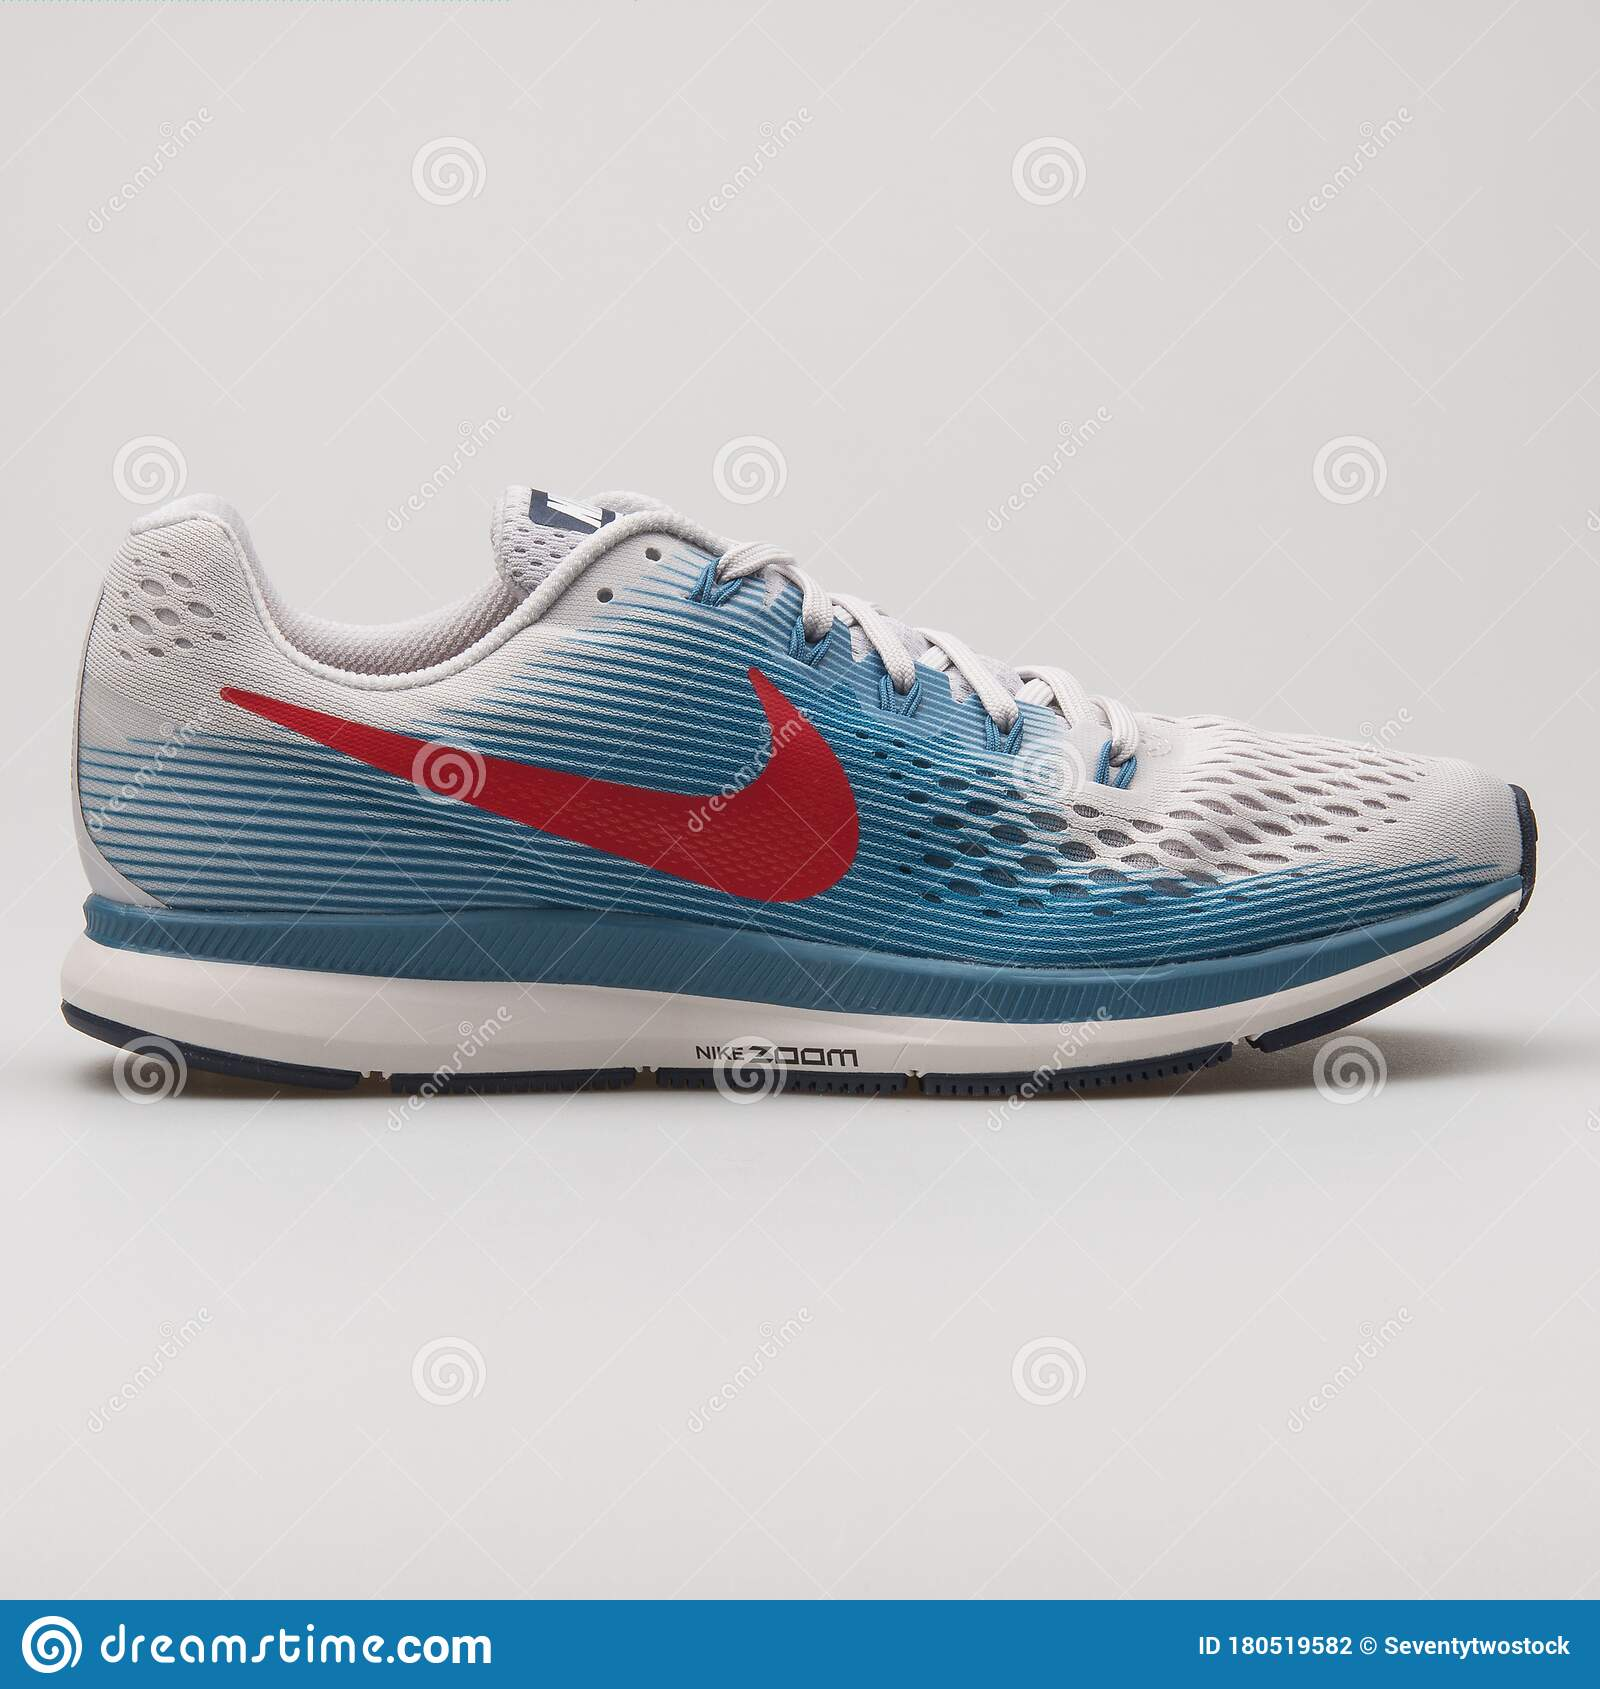 vídeo Centro de la ciudad Larry Belmont  Nike Air Zoom Pegasus 34 White, Blue And Red Sneaker Editorial Photography  - Image of kicks, lifestyle: 180519582